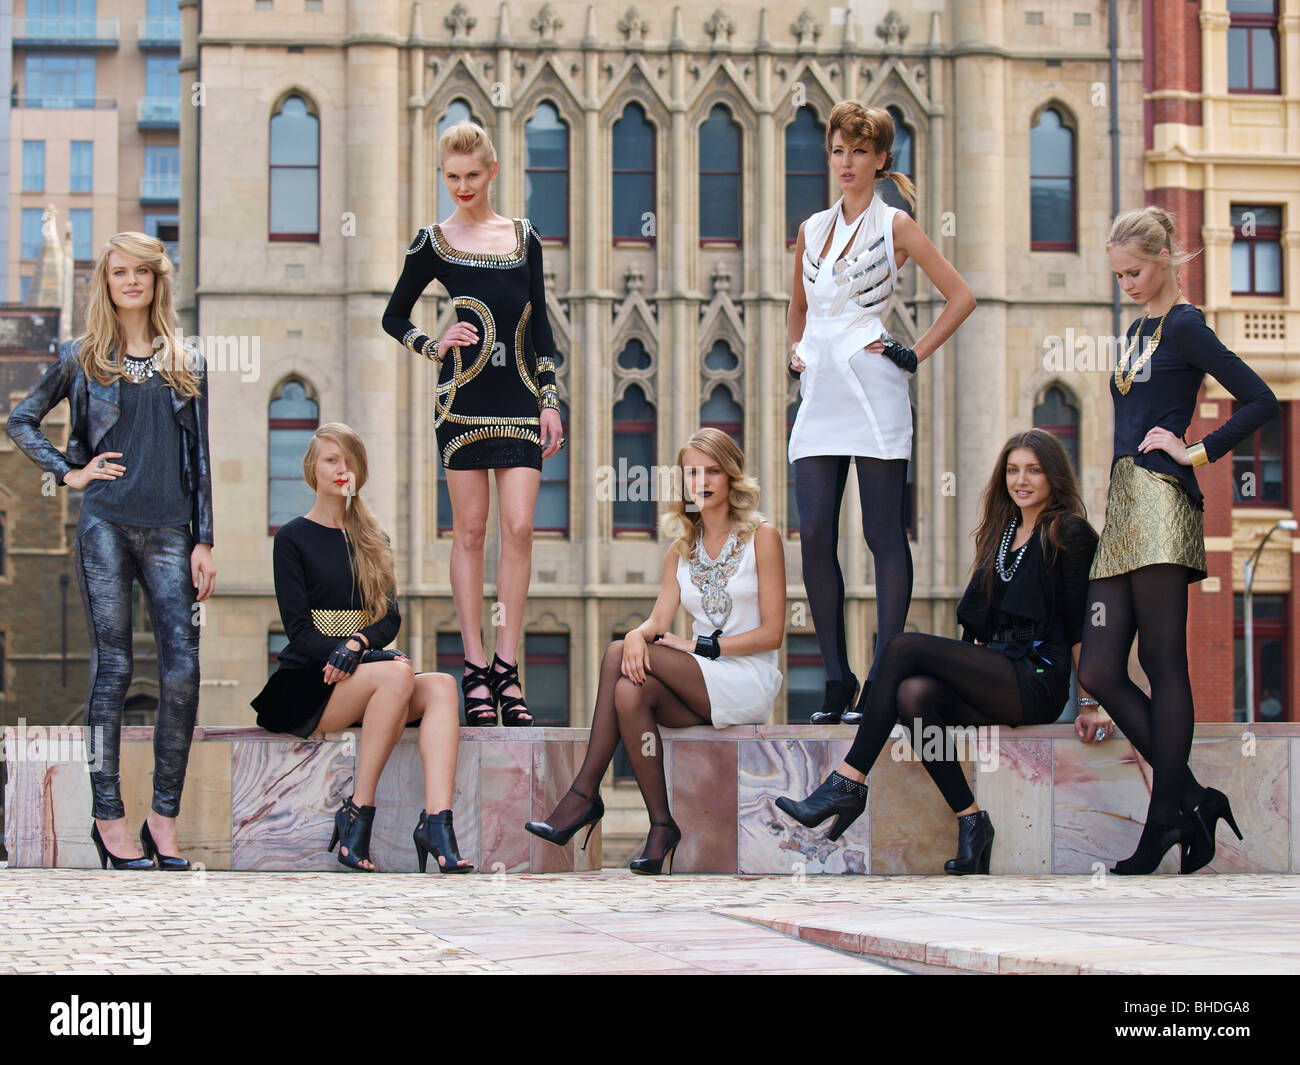 models pose for photographers at federation square melbourne australia - Stock Image